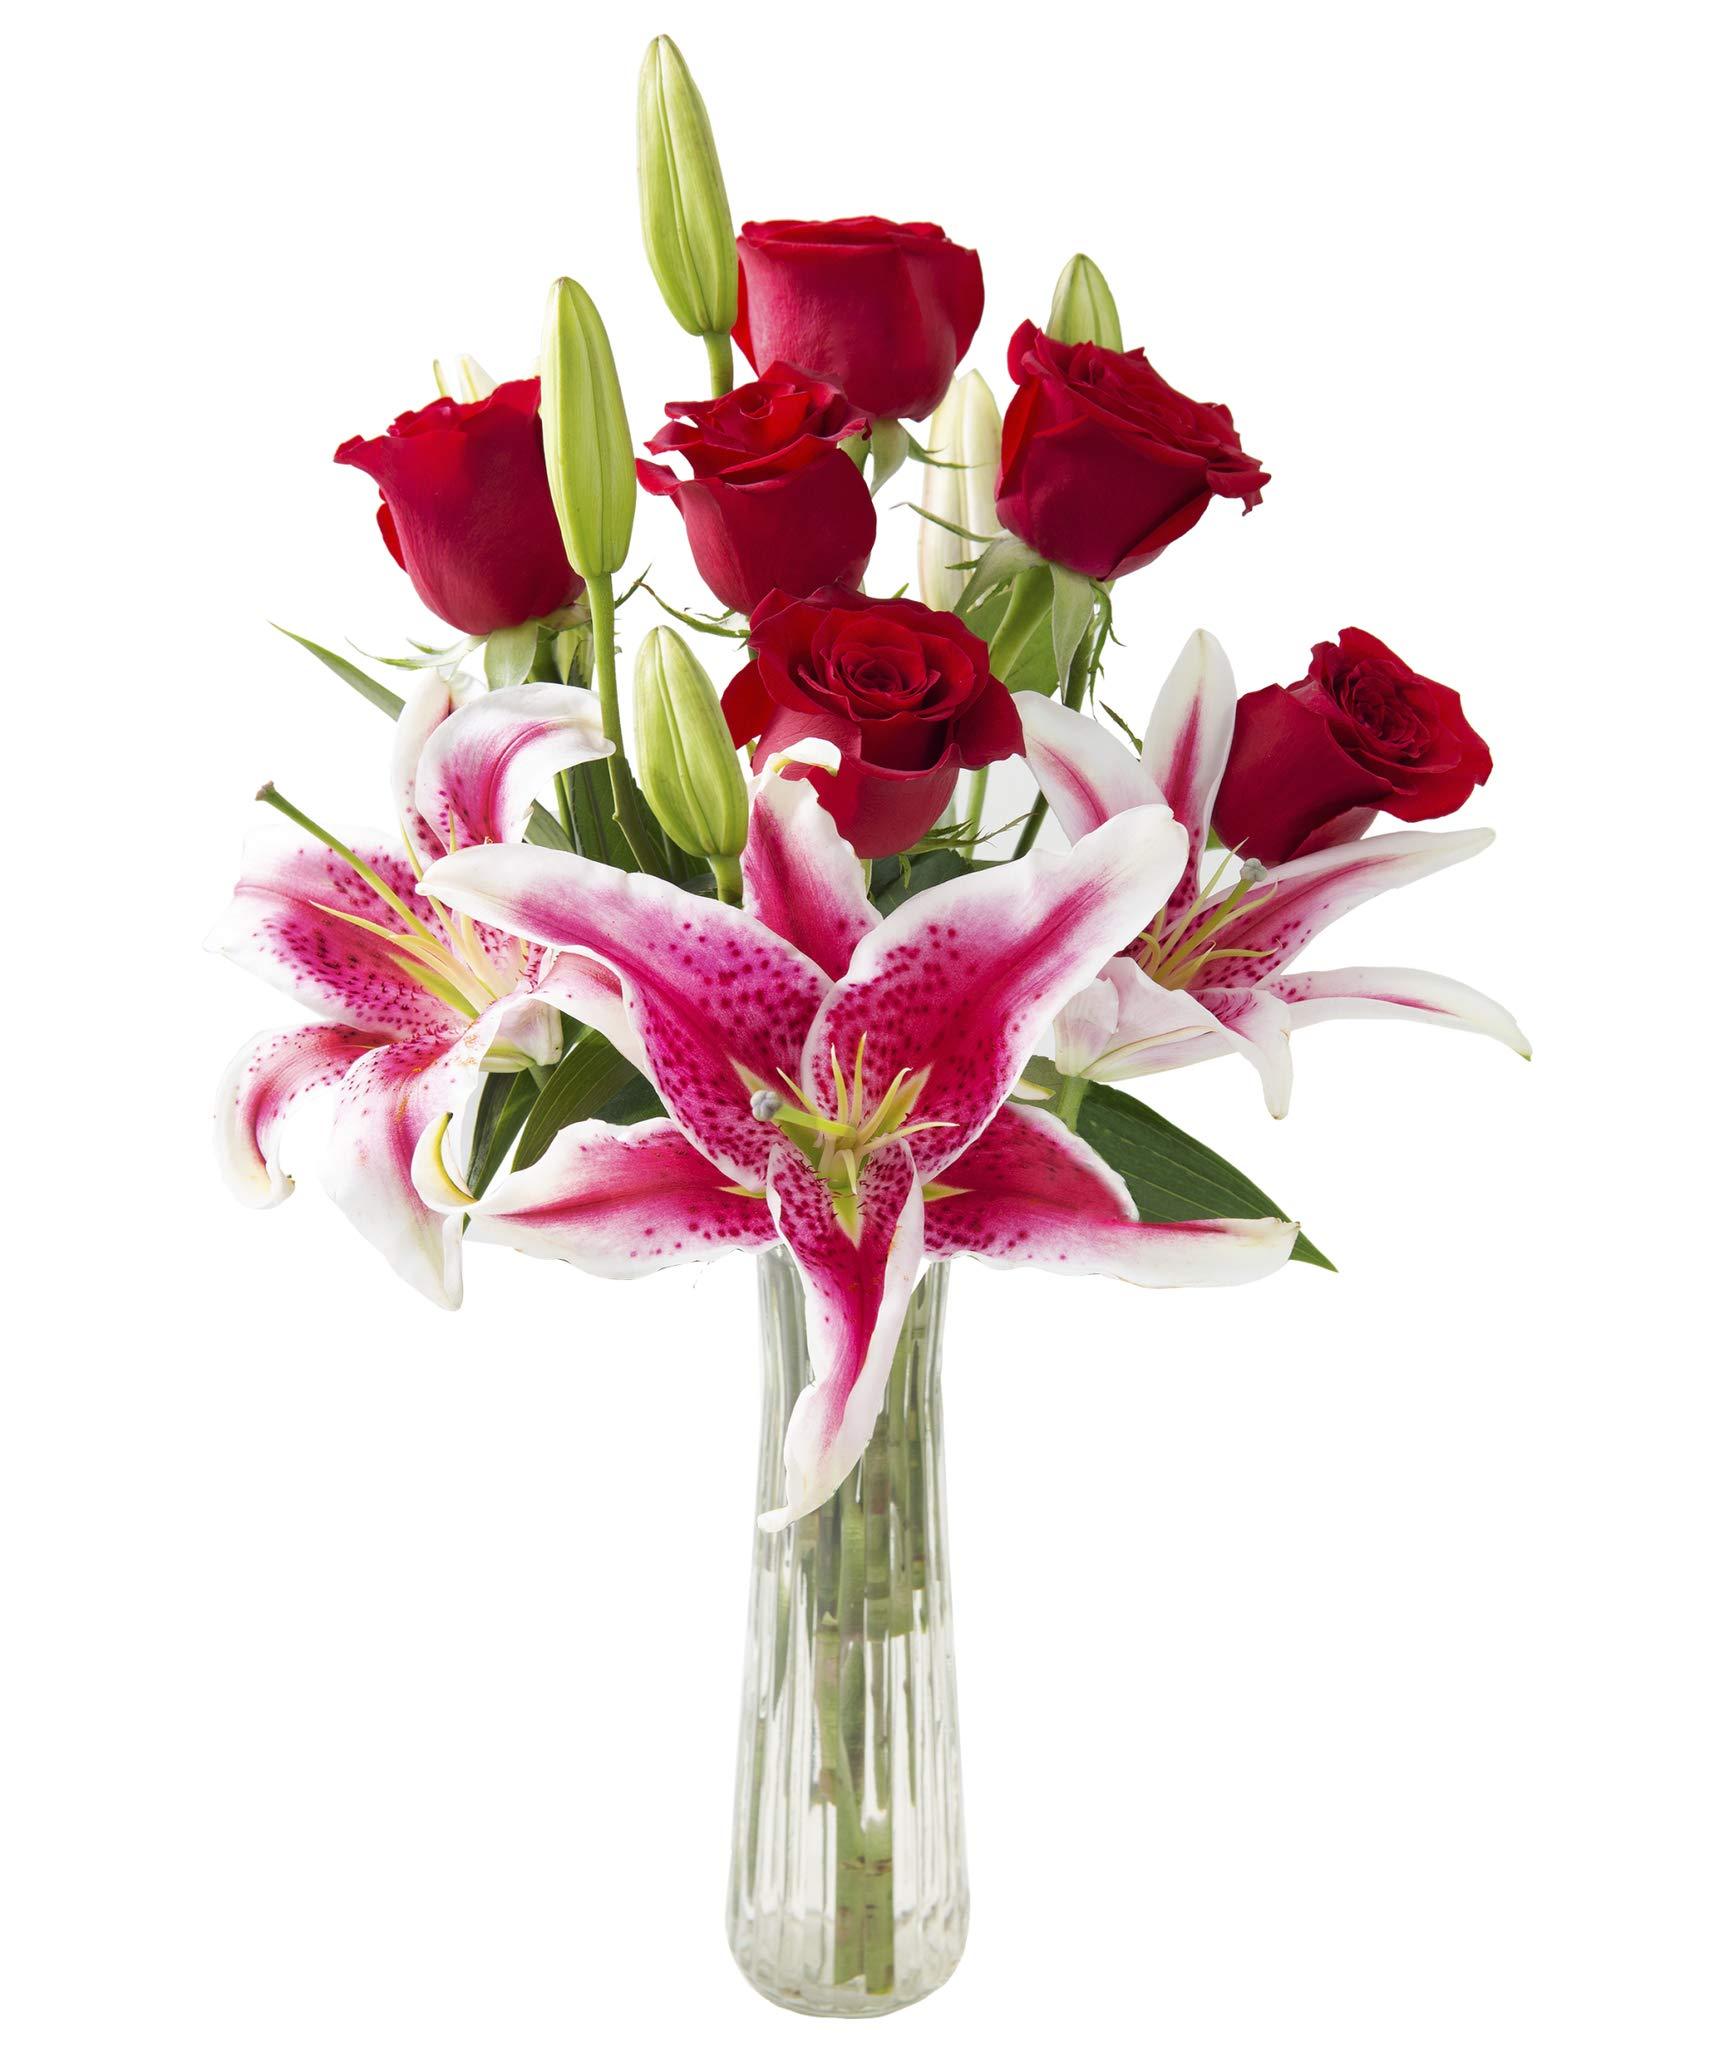 KaBloom Adore Her Mixed Bouquet of Farm-Fresh Red Roses and Pink Lilies with Vase